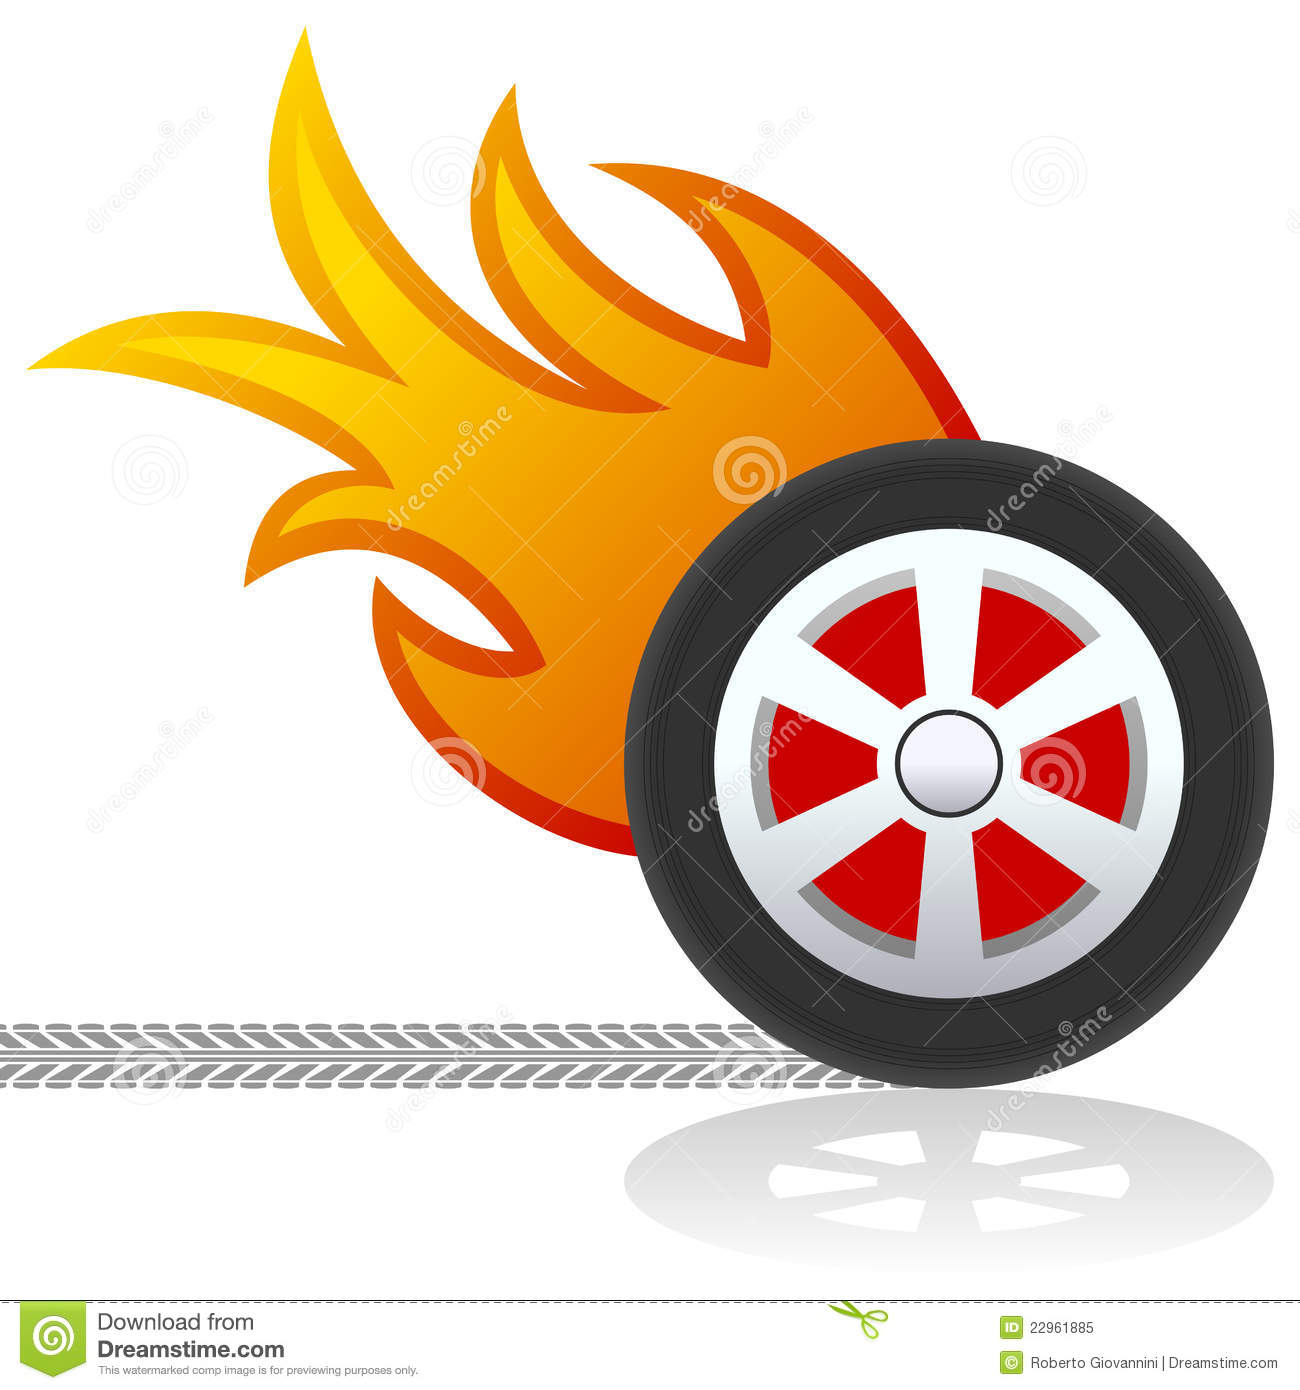 Car Wheel With Flames Logo Stock Vector Illustration Of Clip 22961885